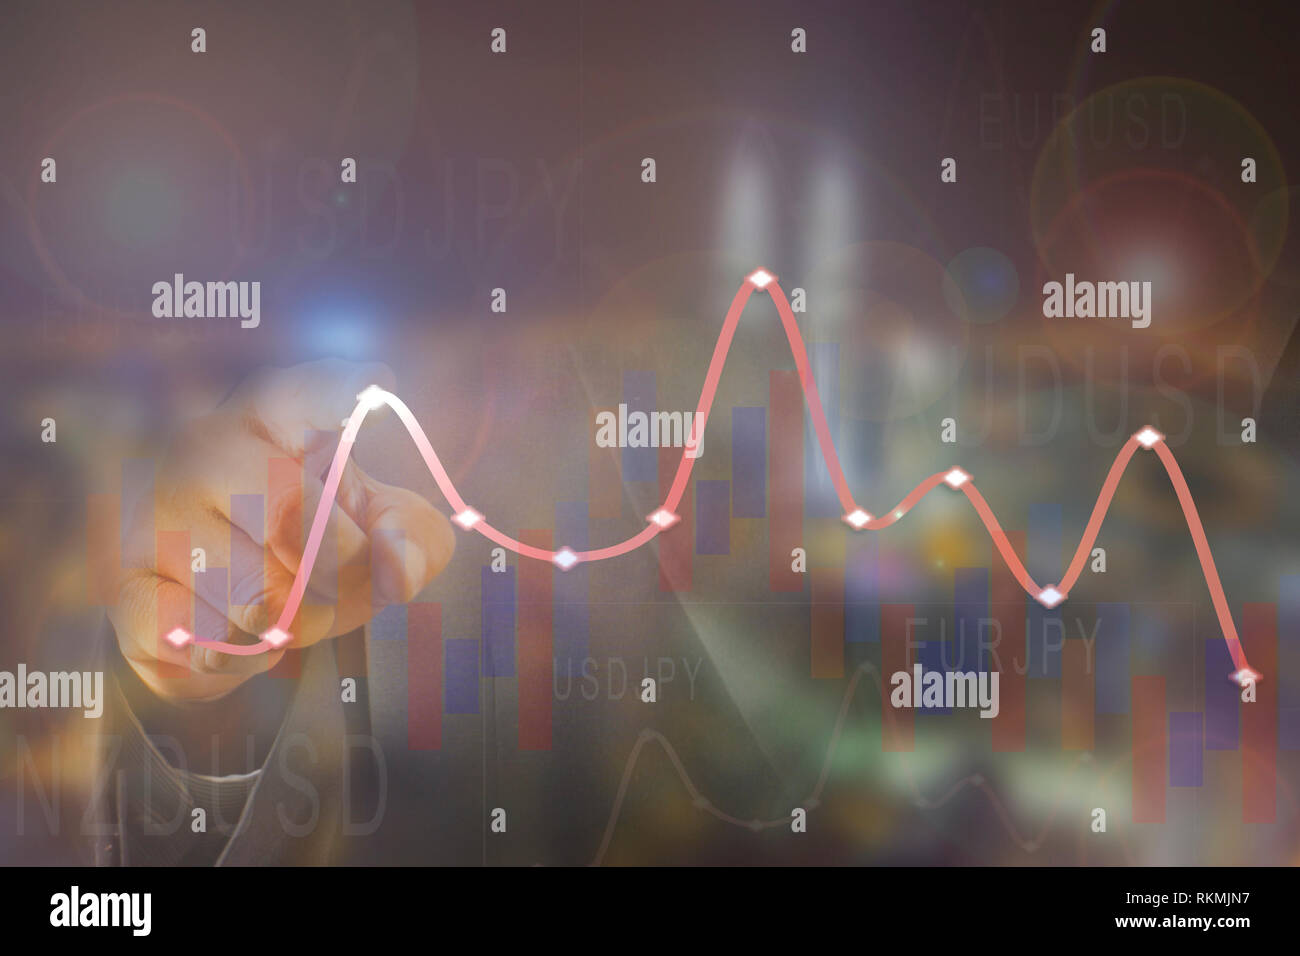 Hand pointing on a forex chart over blurred background image. - Stock Image